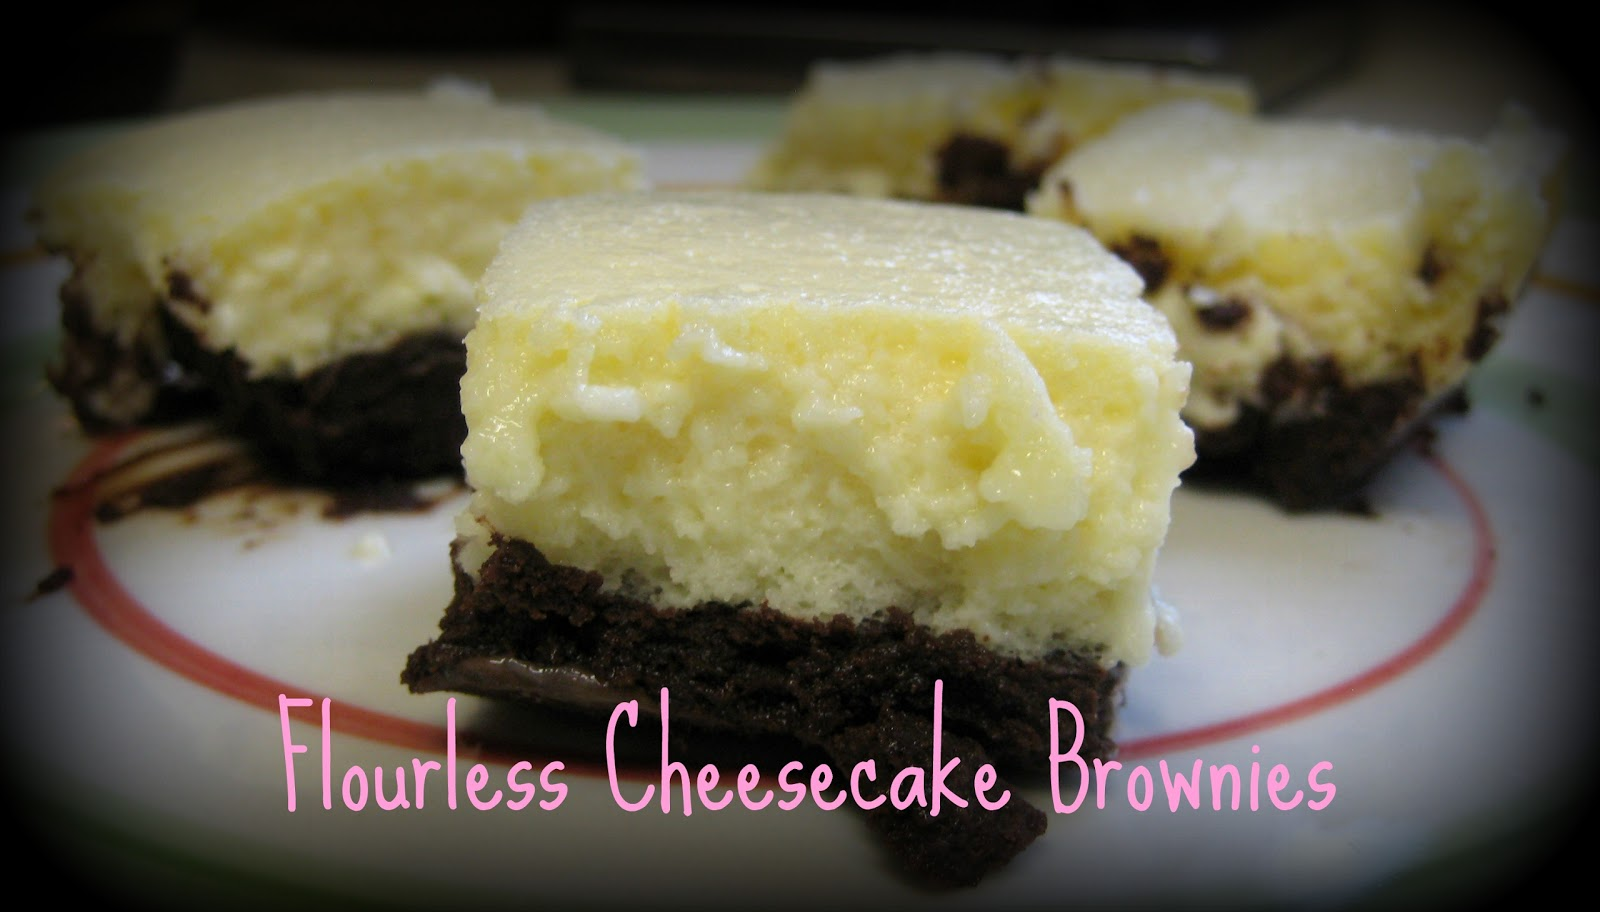 brownies skinny strawberry cheesecake brownies cheesecake brownies